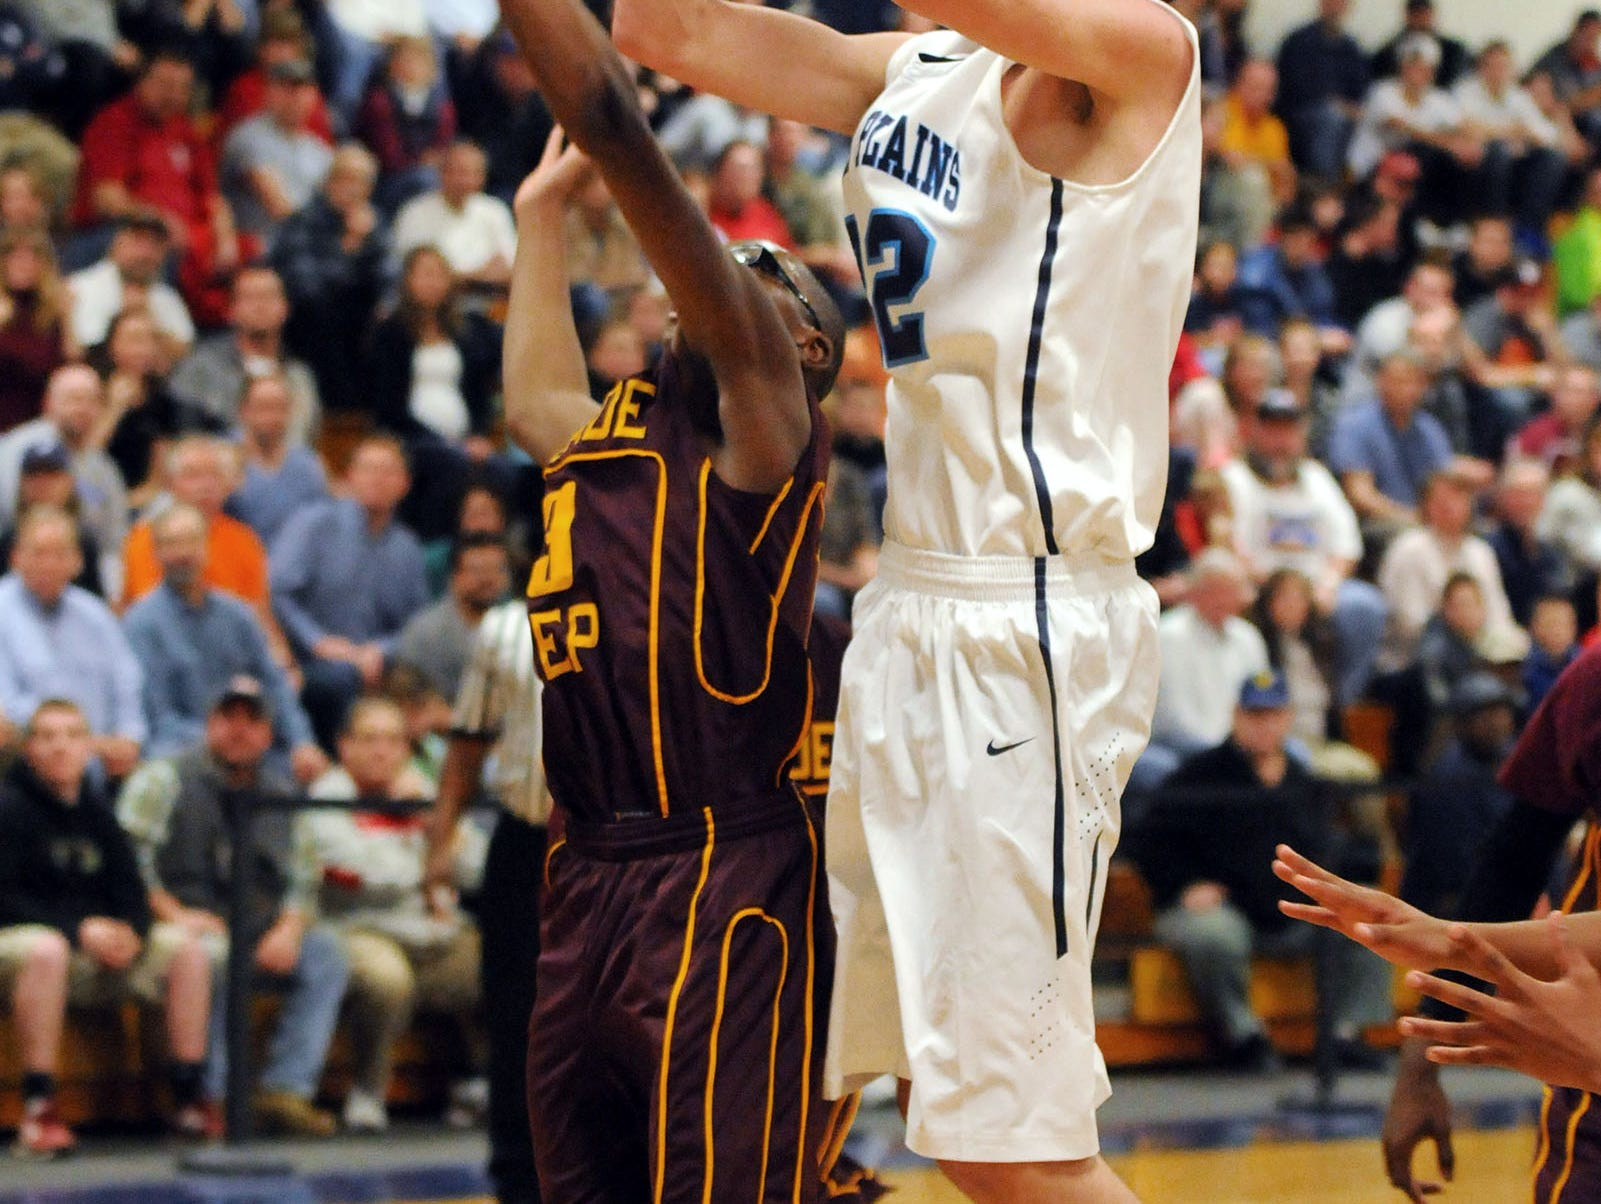 Pine Plains' Zach Lydon shoots against Palisade Prep in a Class C regional semifinal on March 5, 2013 in Newburgh.